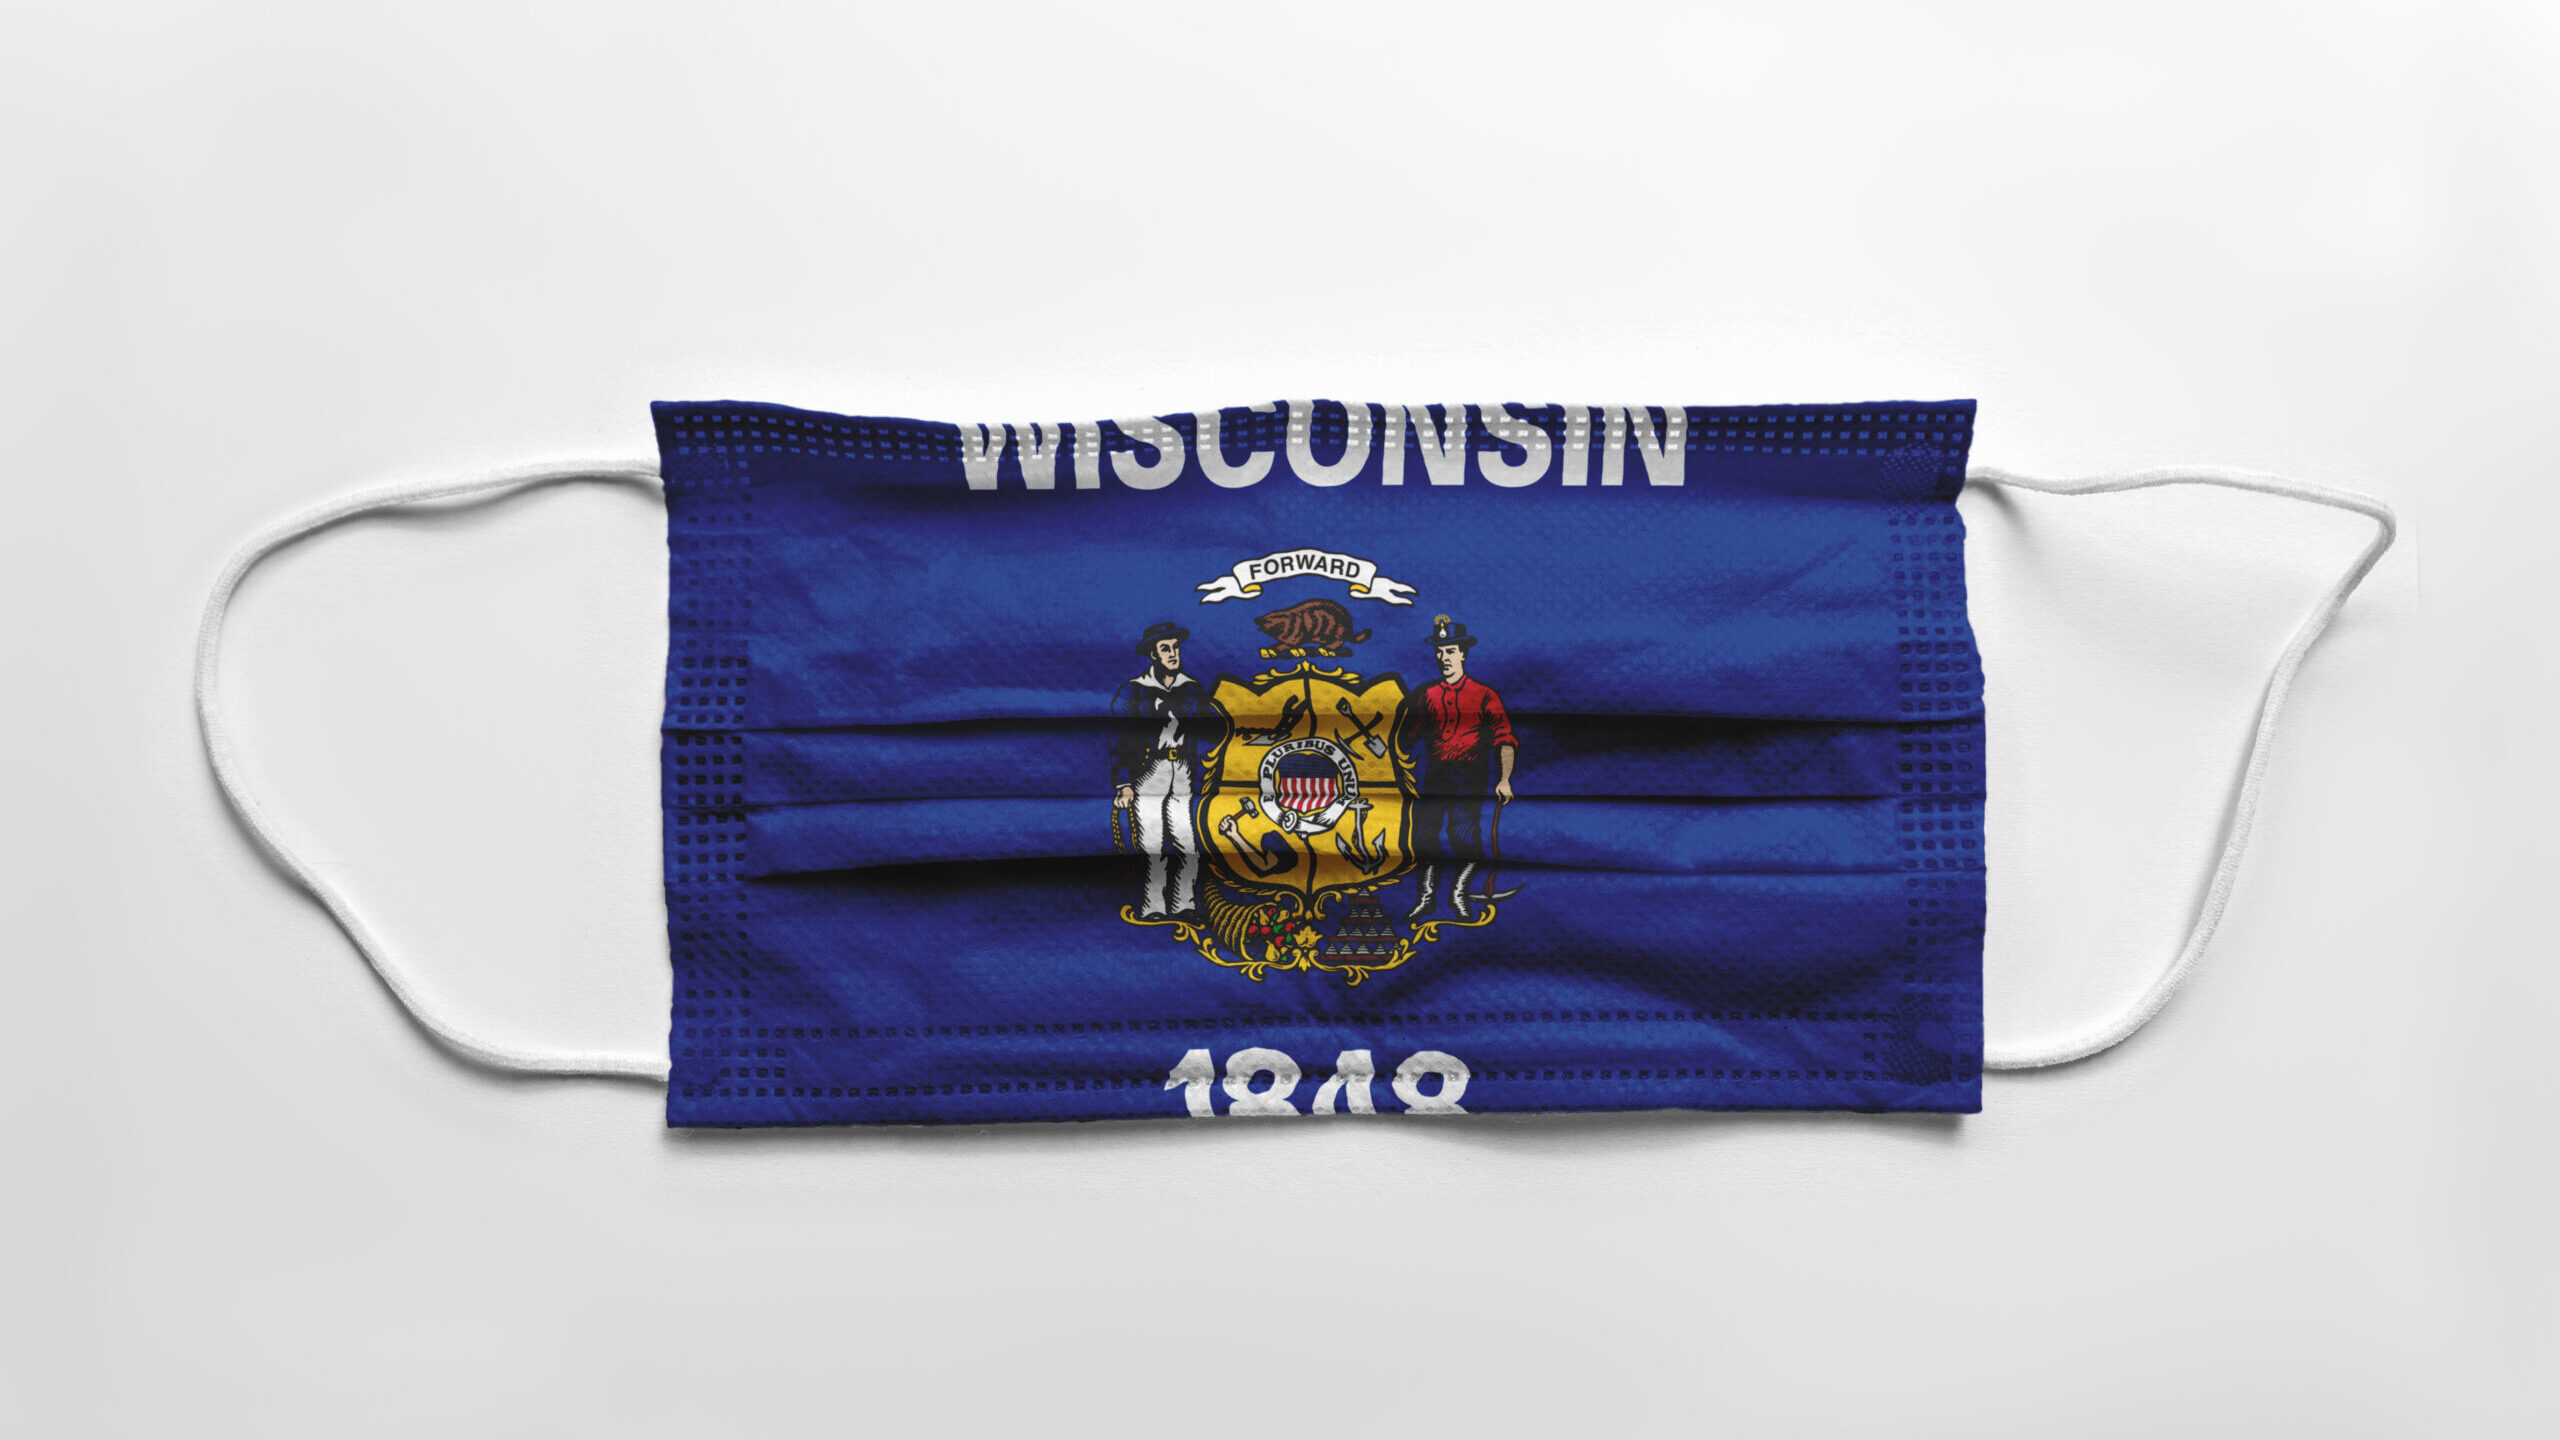 A surgical mask printed with the Wisconsin flag